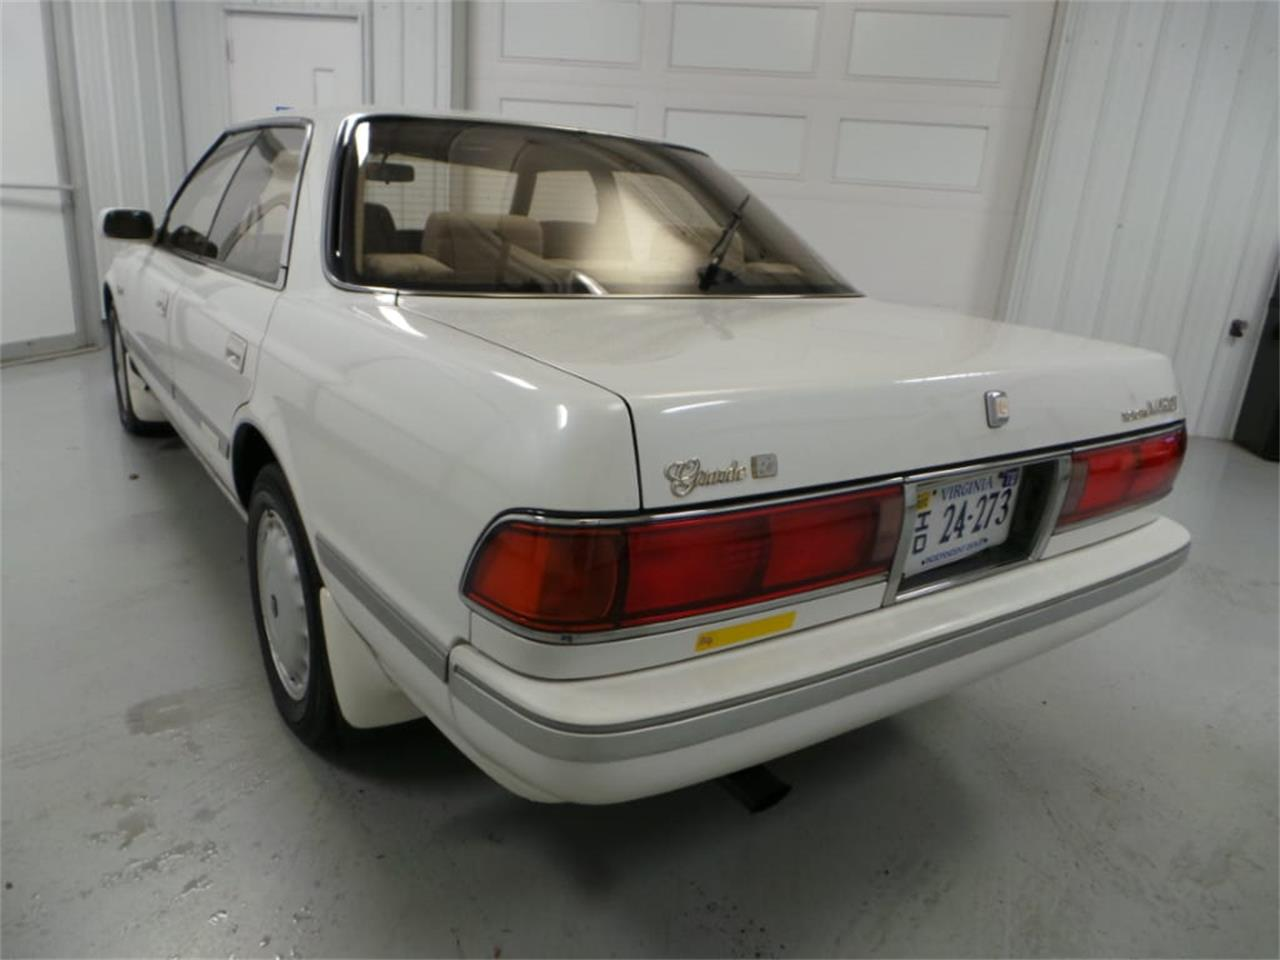 Large Picture of 1988 Corona Mark II - $7,900.00 Offered by Duncan Imports & Classic Cars - JLDS